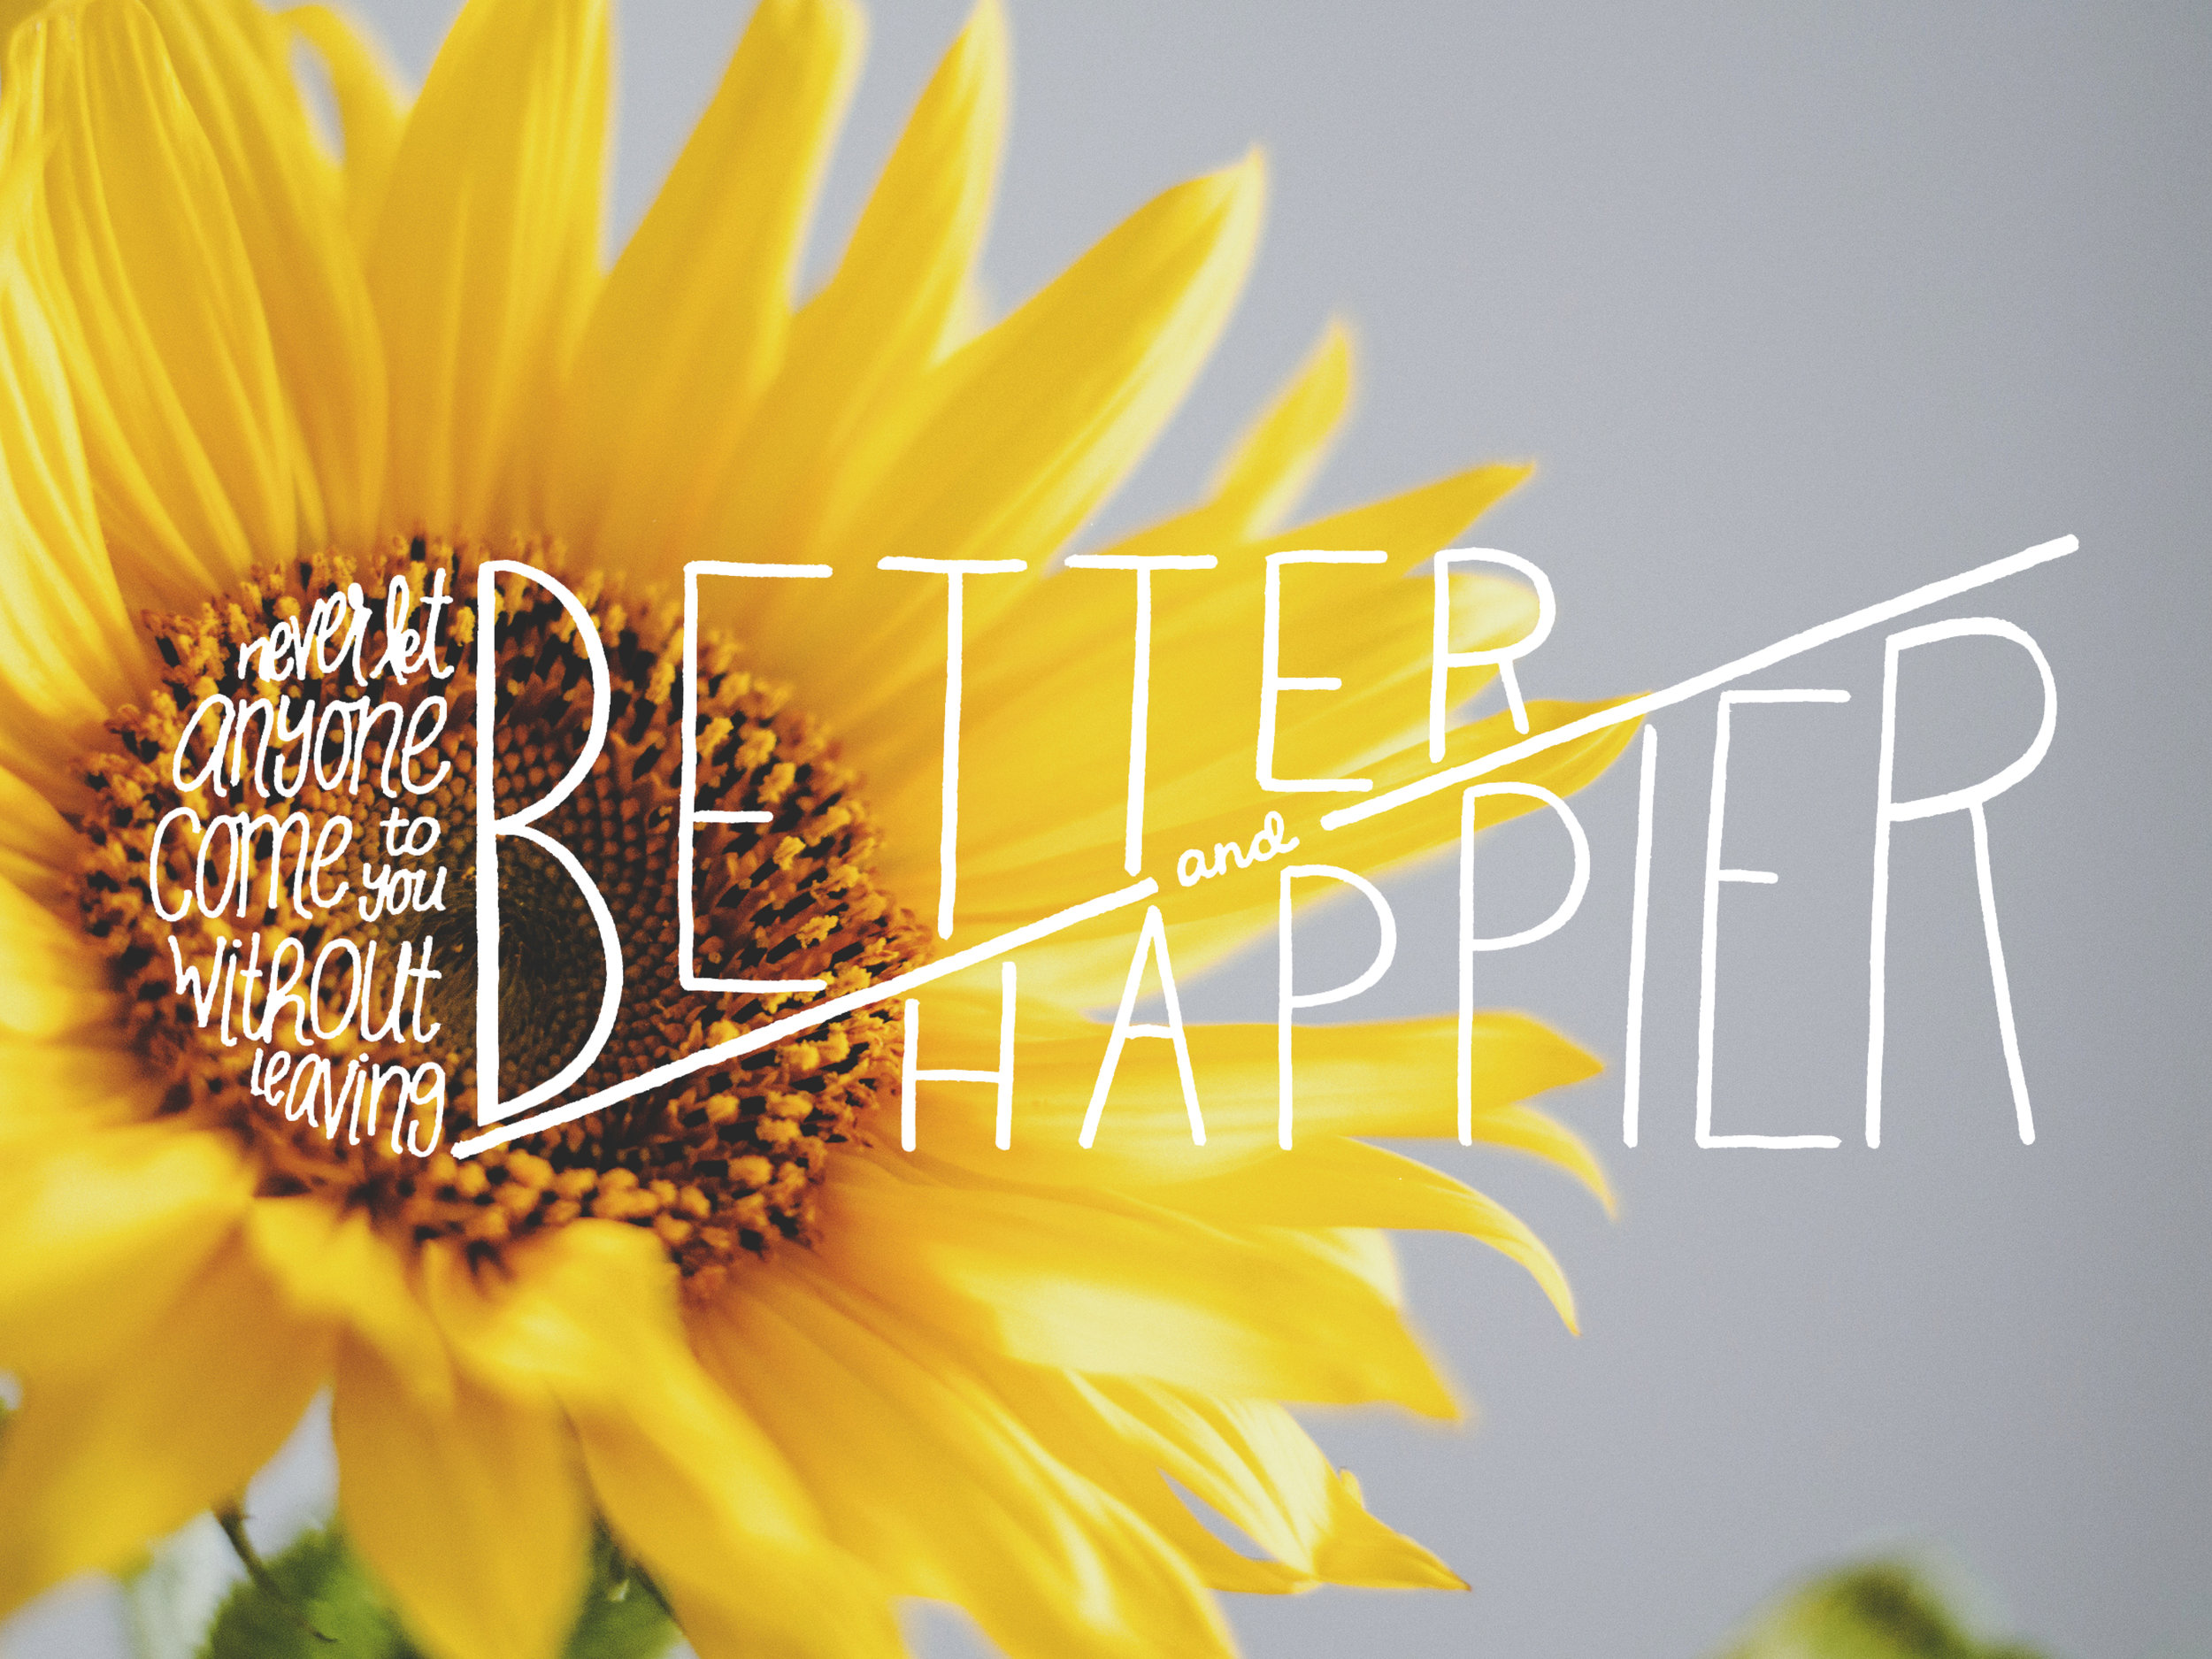 Better and Happier